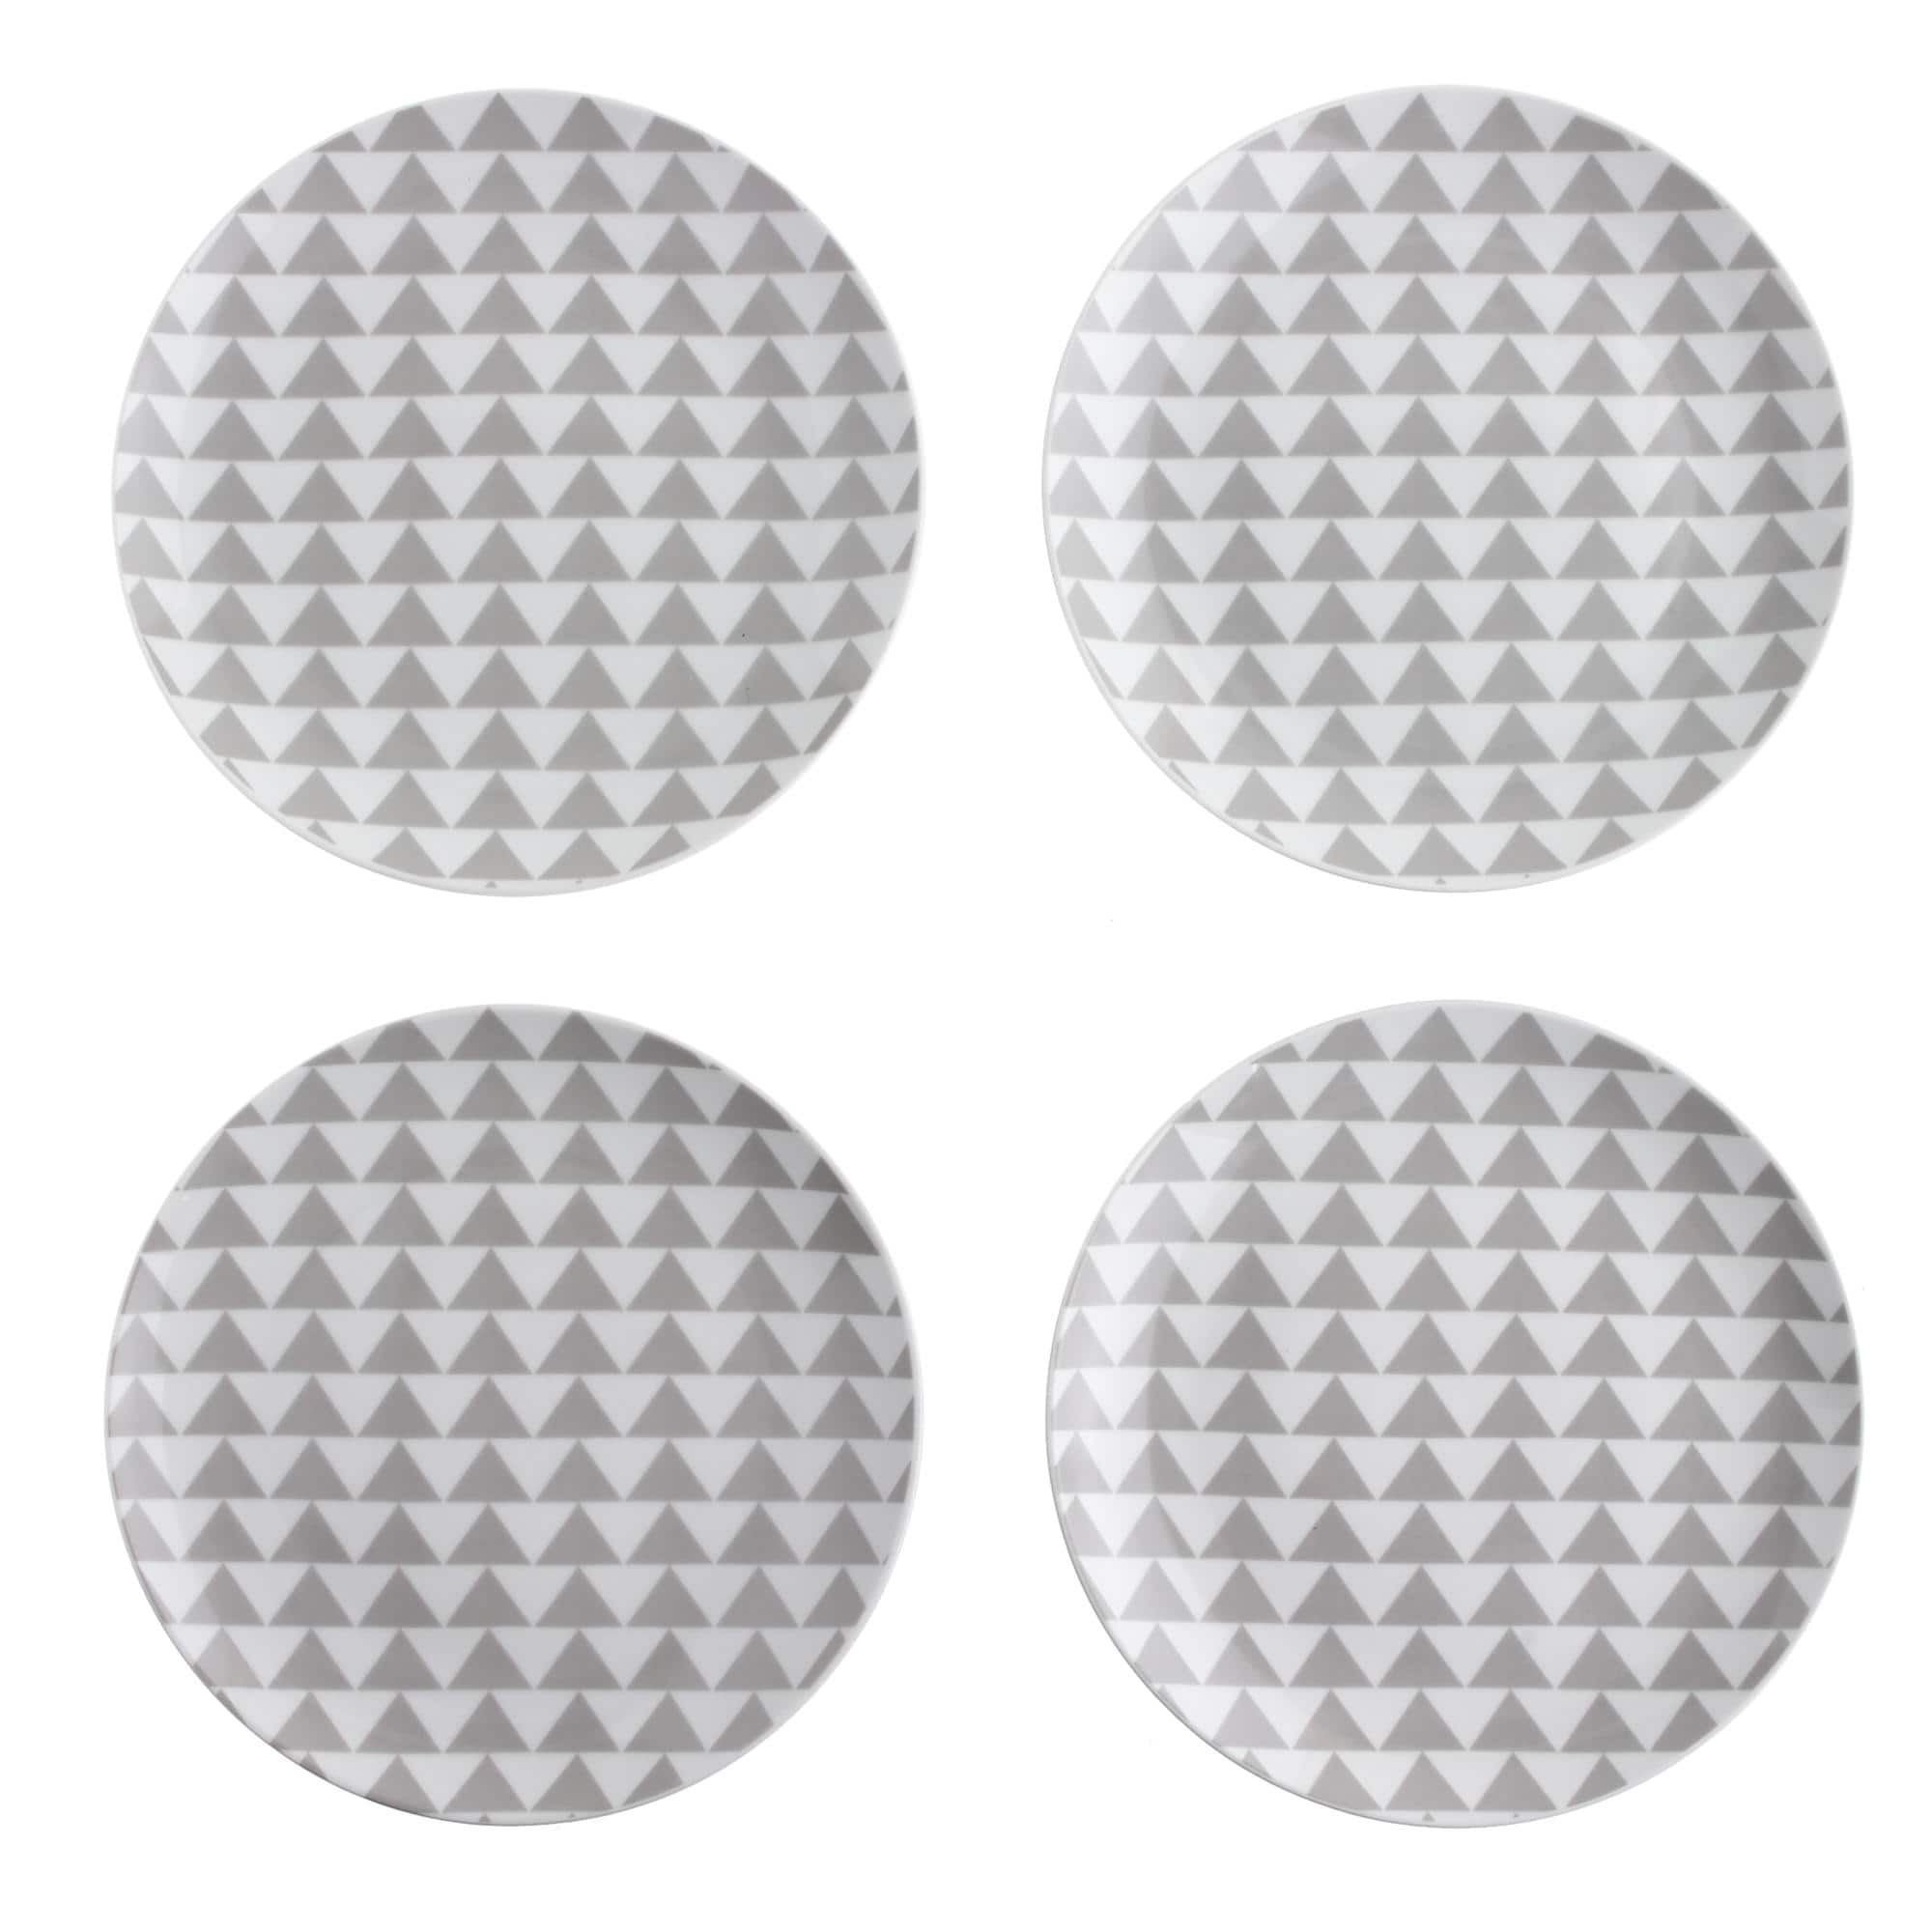 J.Crew Ceramic Plate Set (set of 4) - $3.50 with code SALETIME + FREE SHIPPING